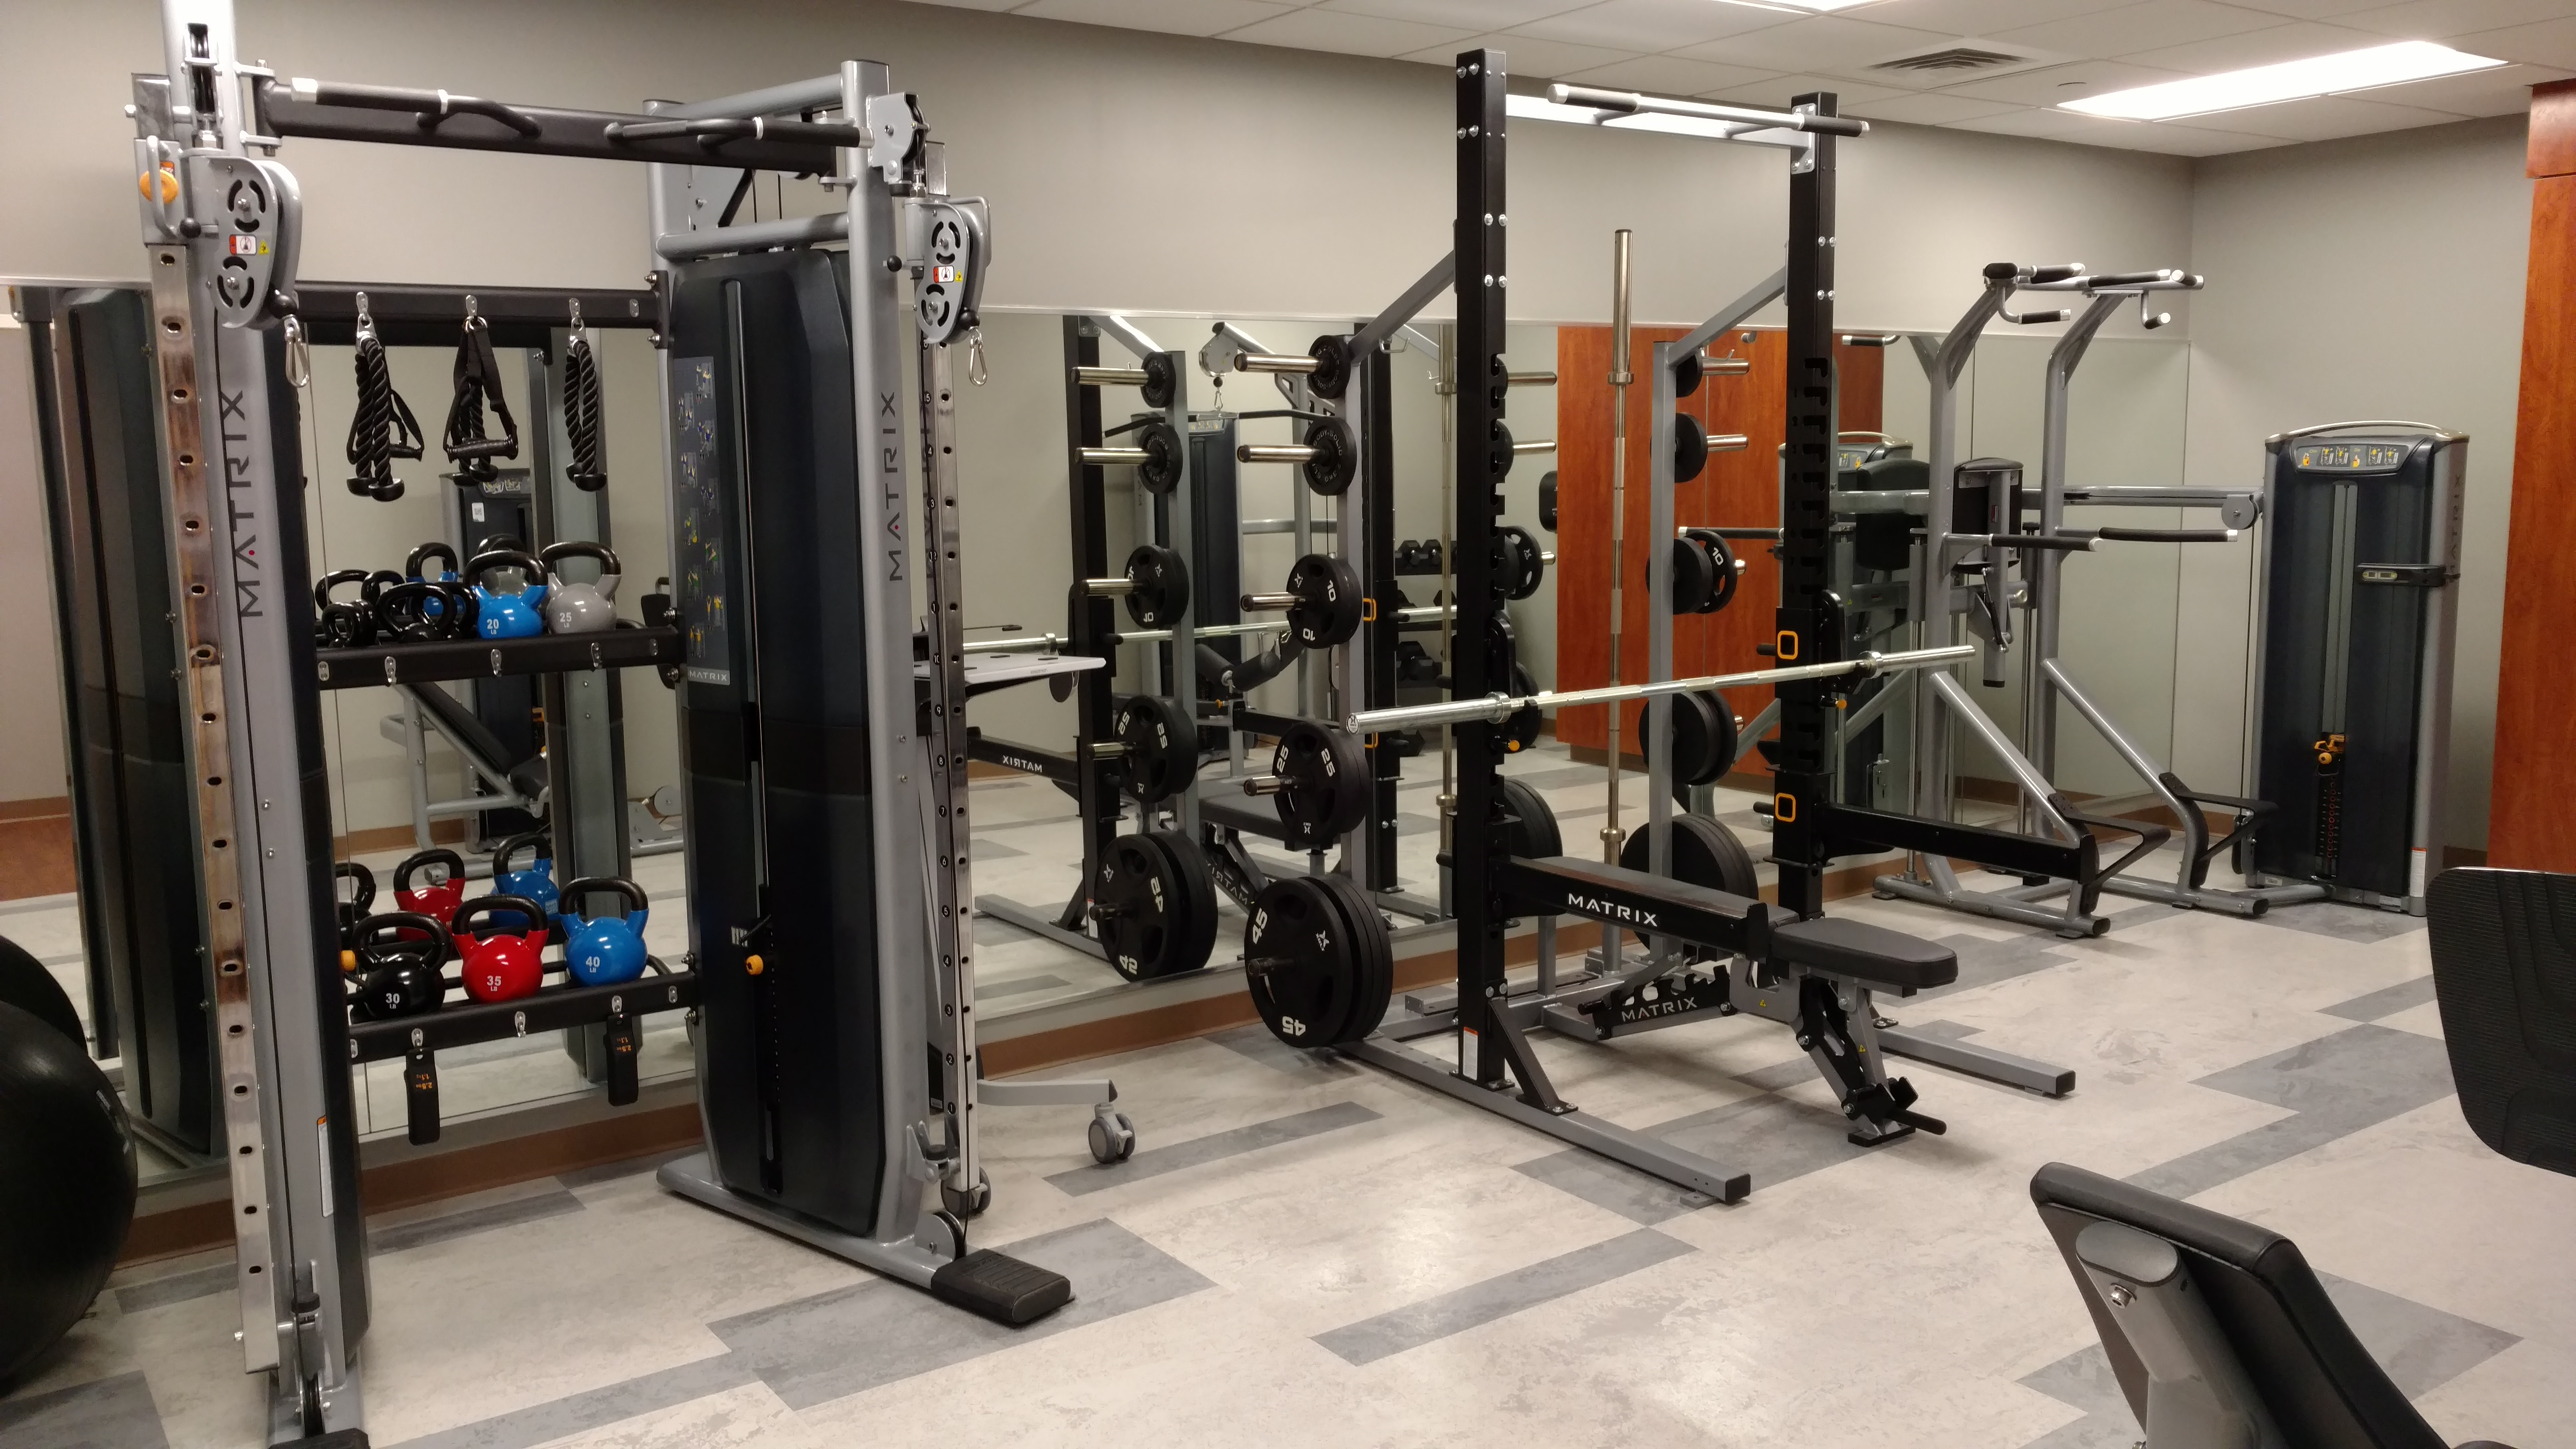 Bariatric Solutions Exercise Equipment